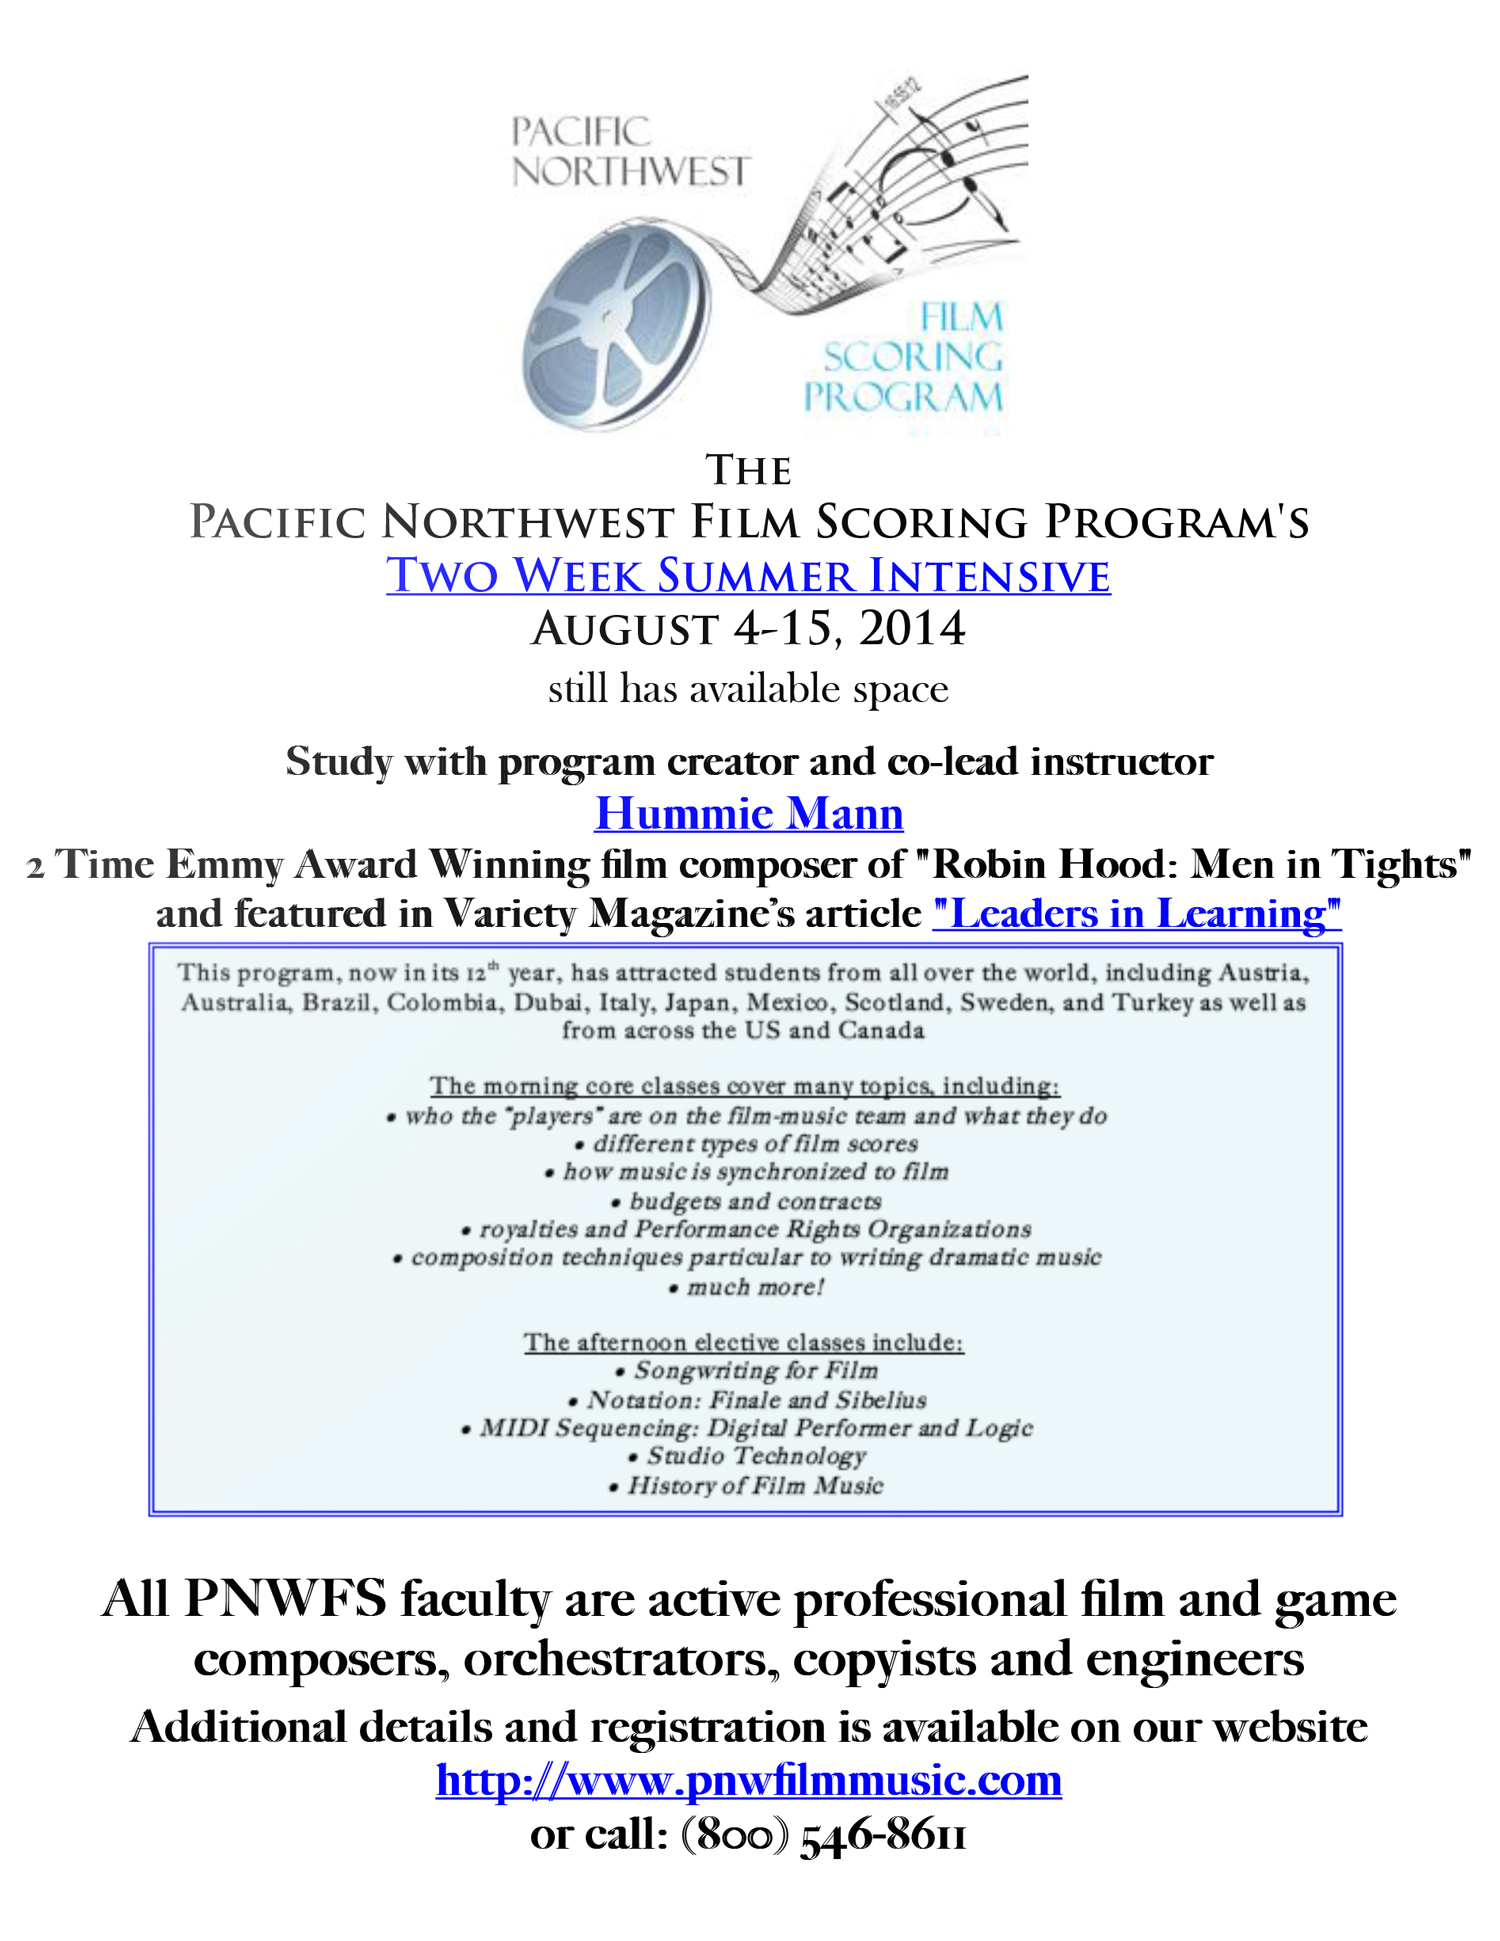 The 2014 Pacific Northwest Film Scoring Program Summer Intensive, lead by film composer Hummie Man